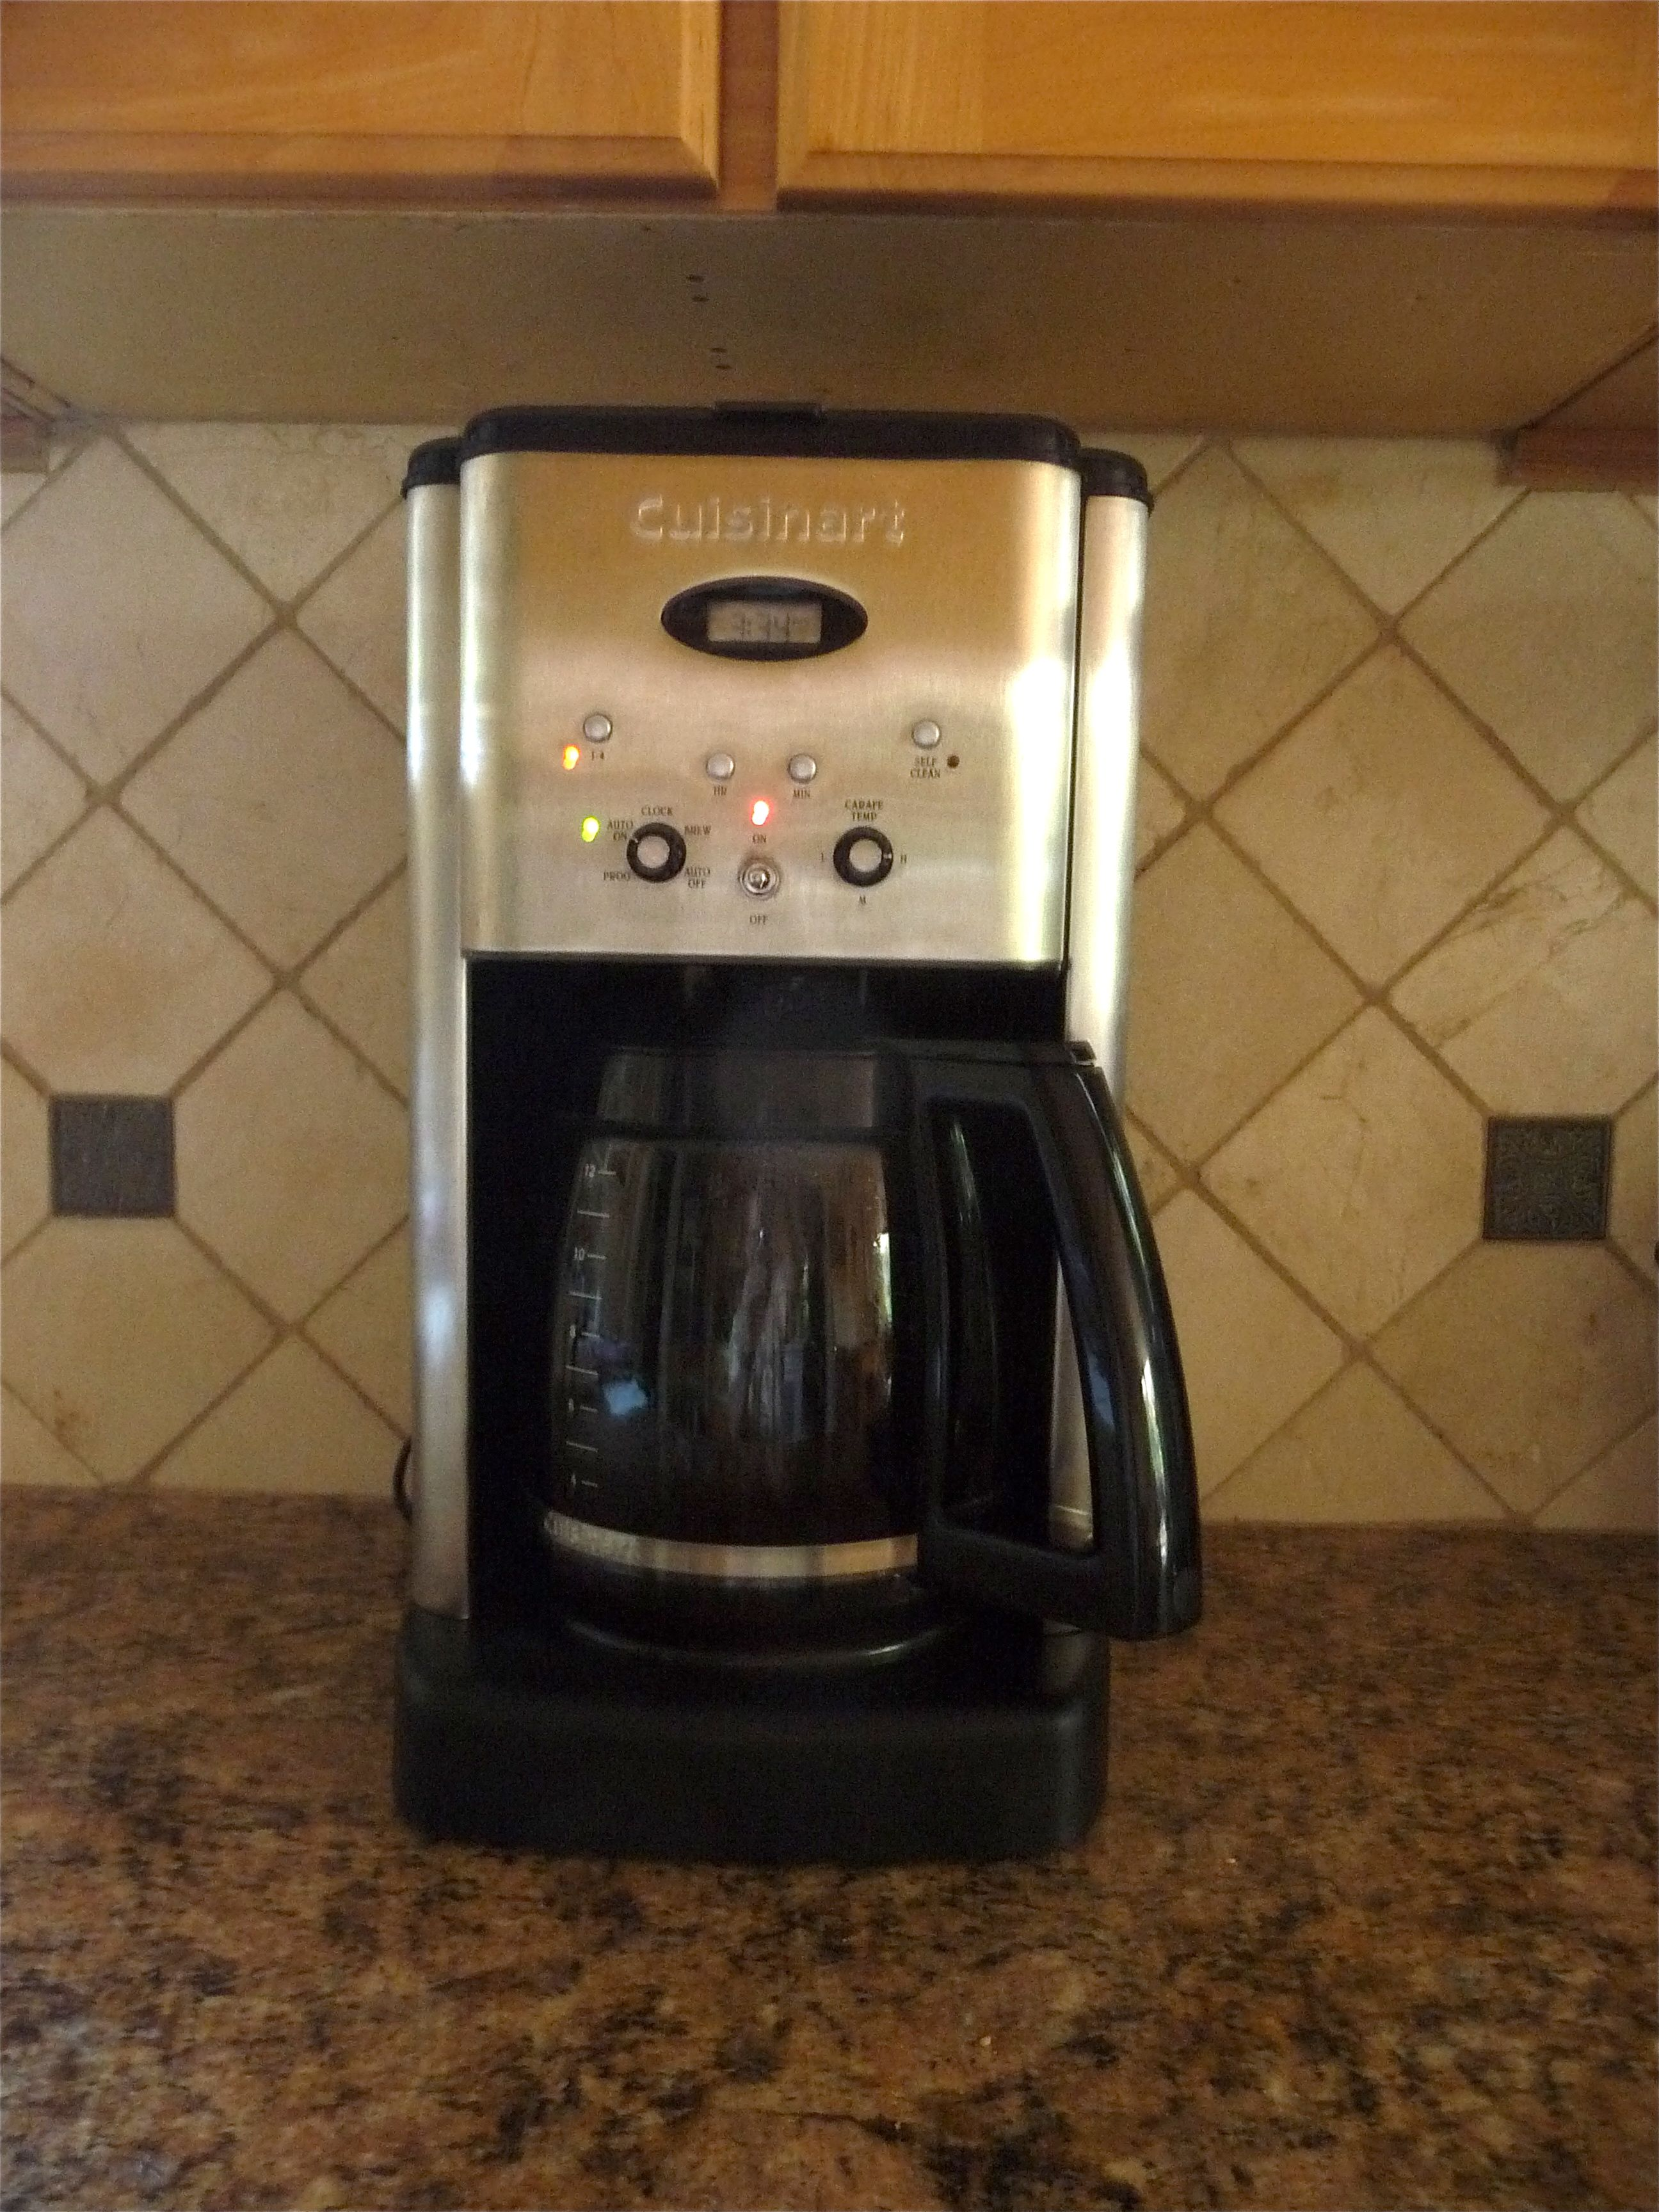 DCC 1200 On Counter Under Cabinet P1090918 En 225x300 The Best Coffee Maker  For Even 2